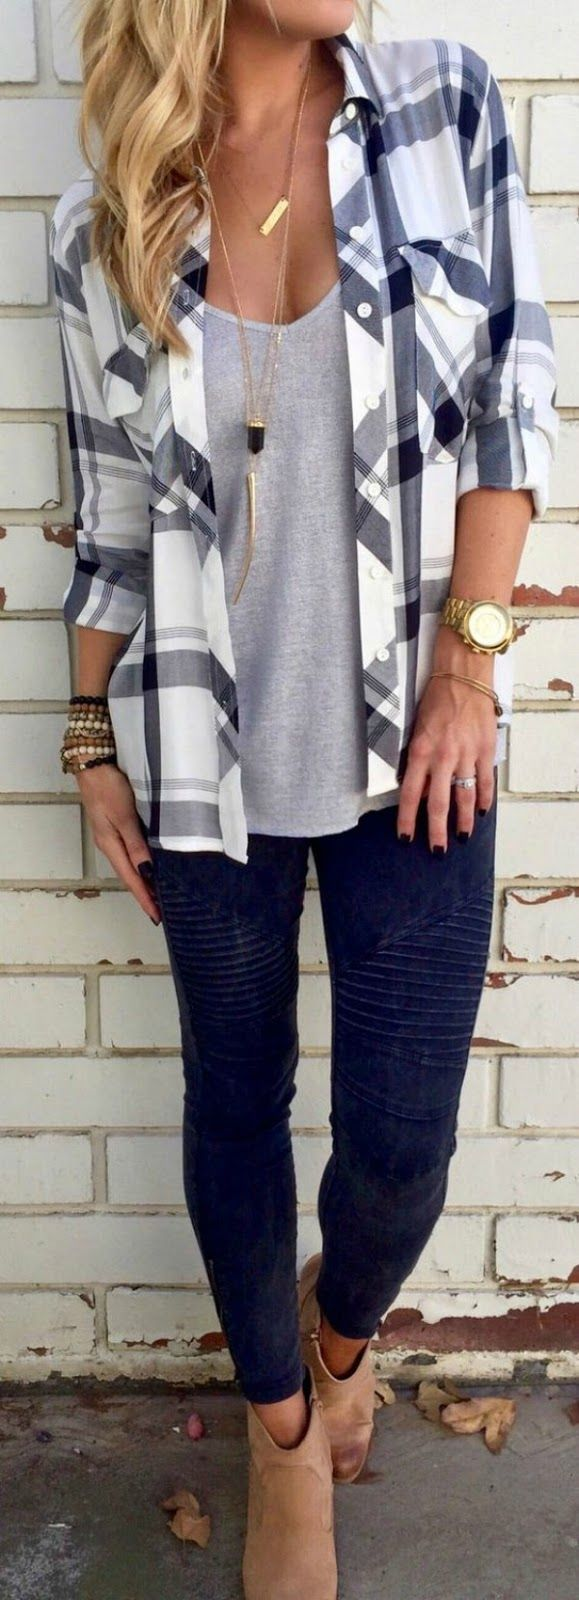 MountainMama: Fall Fashion Over 40